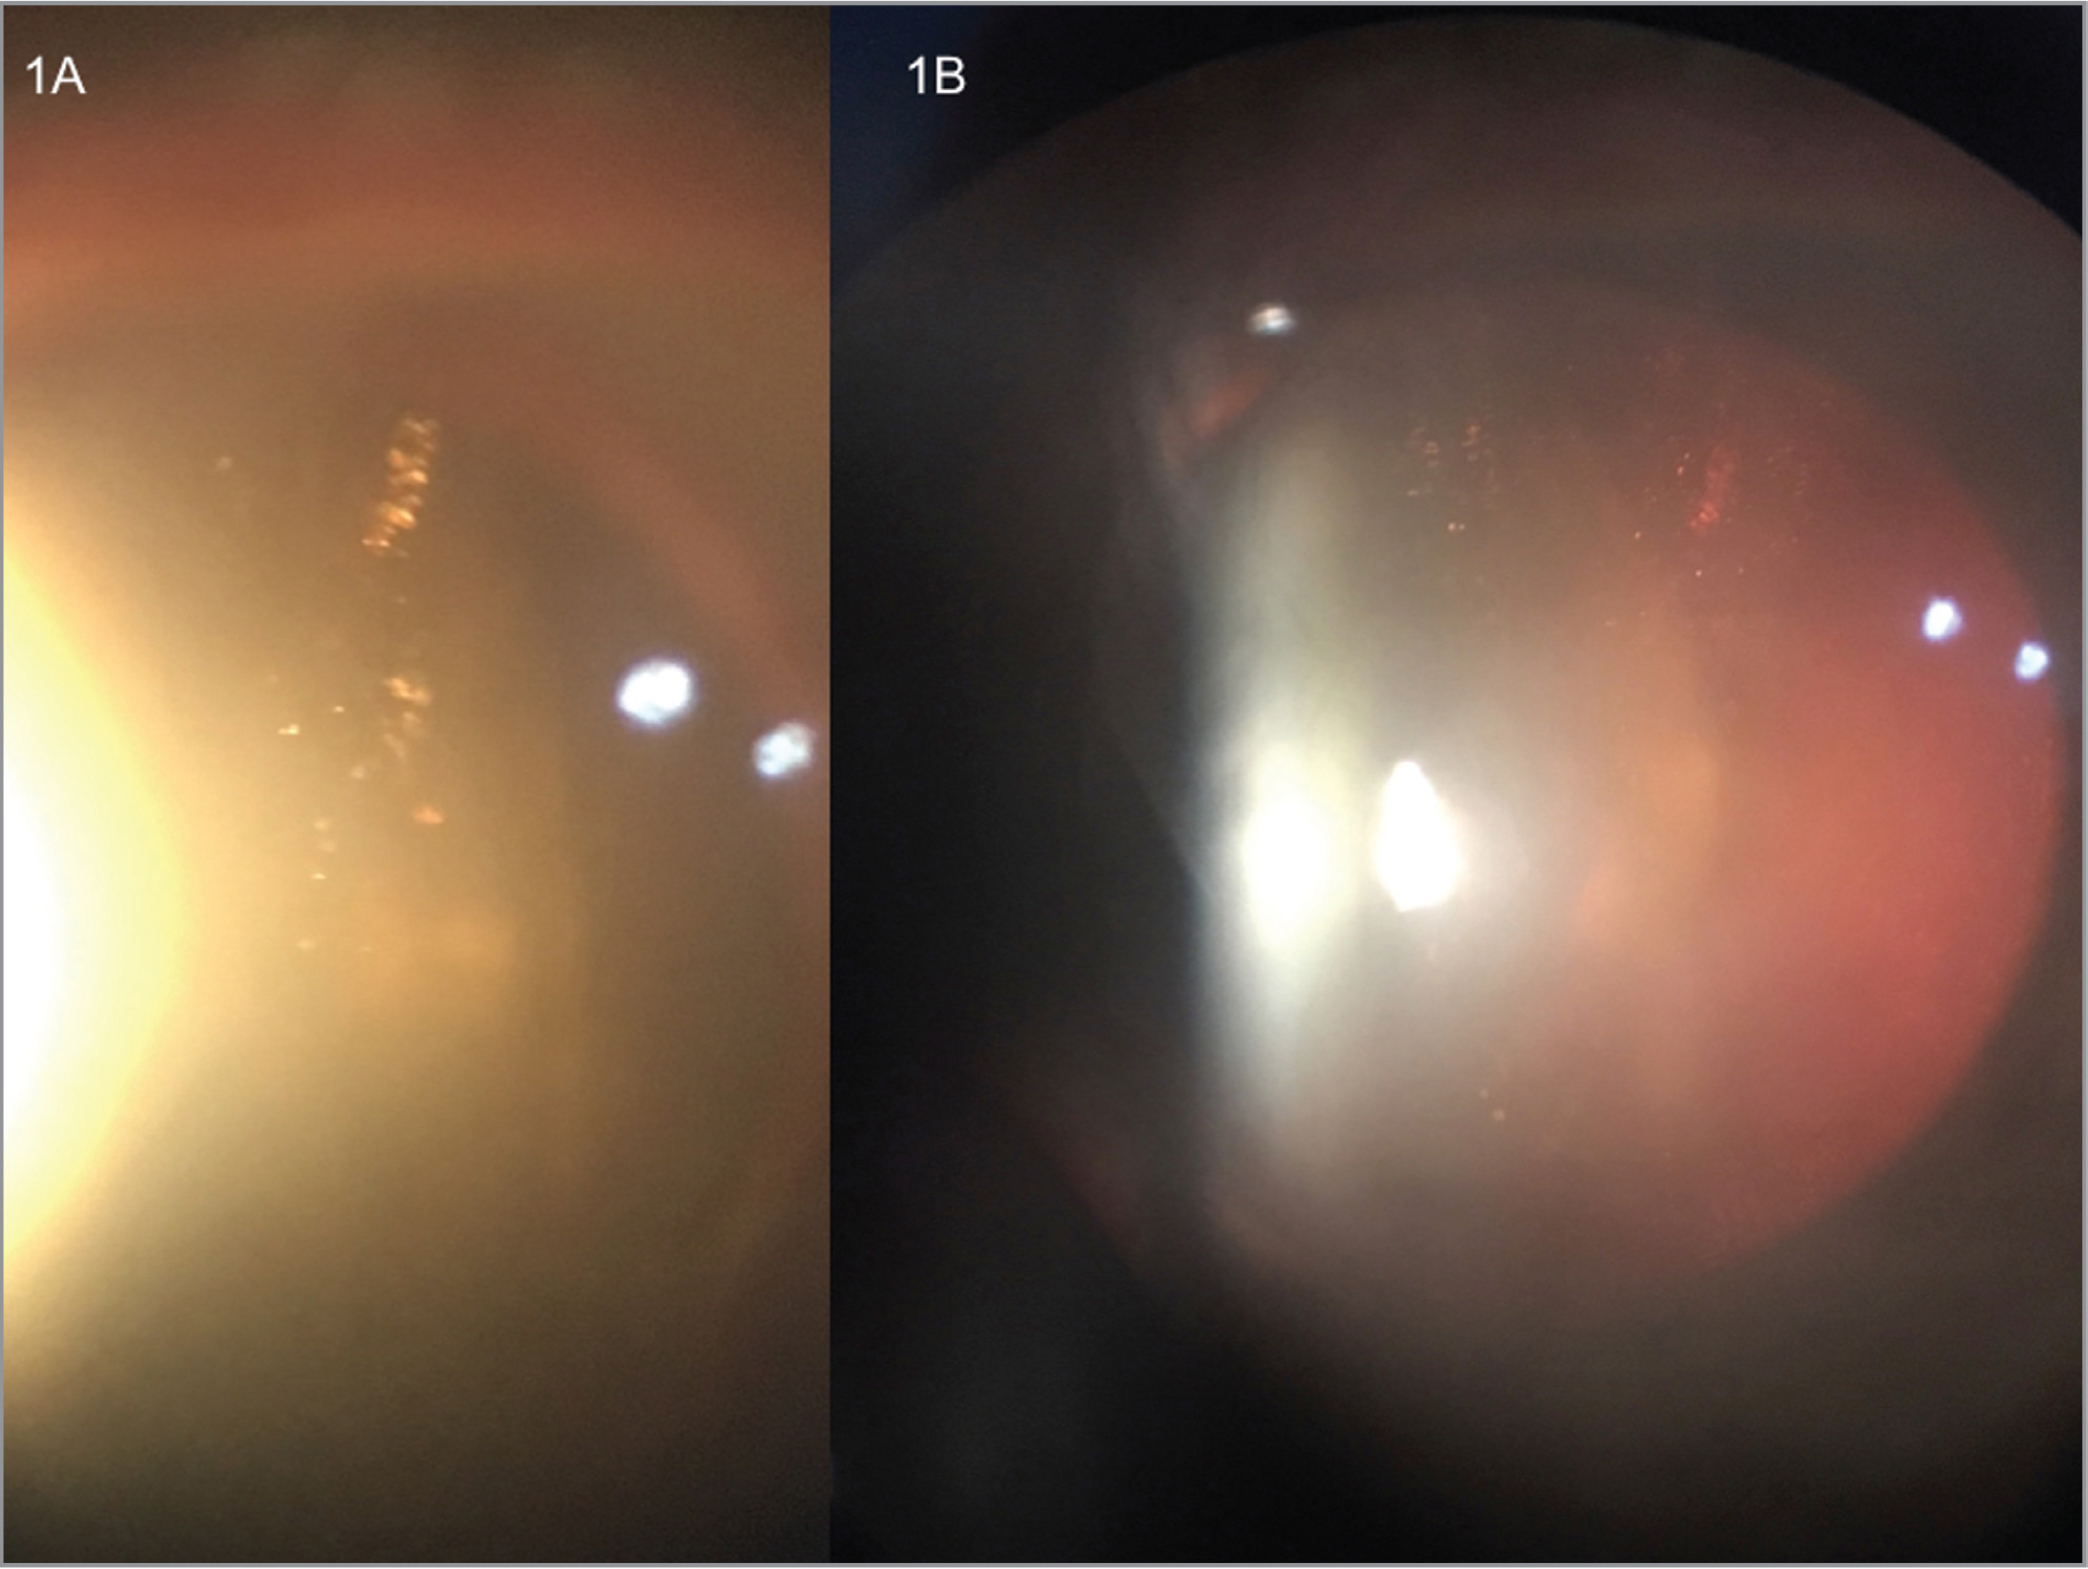 (A, B) Two cases with round intravitreal material suggestive of silicone oil droplets after complete resolution of the inflammatory reaction. Saldanha Rodrigues syringes had been used in all cases.